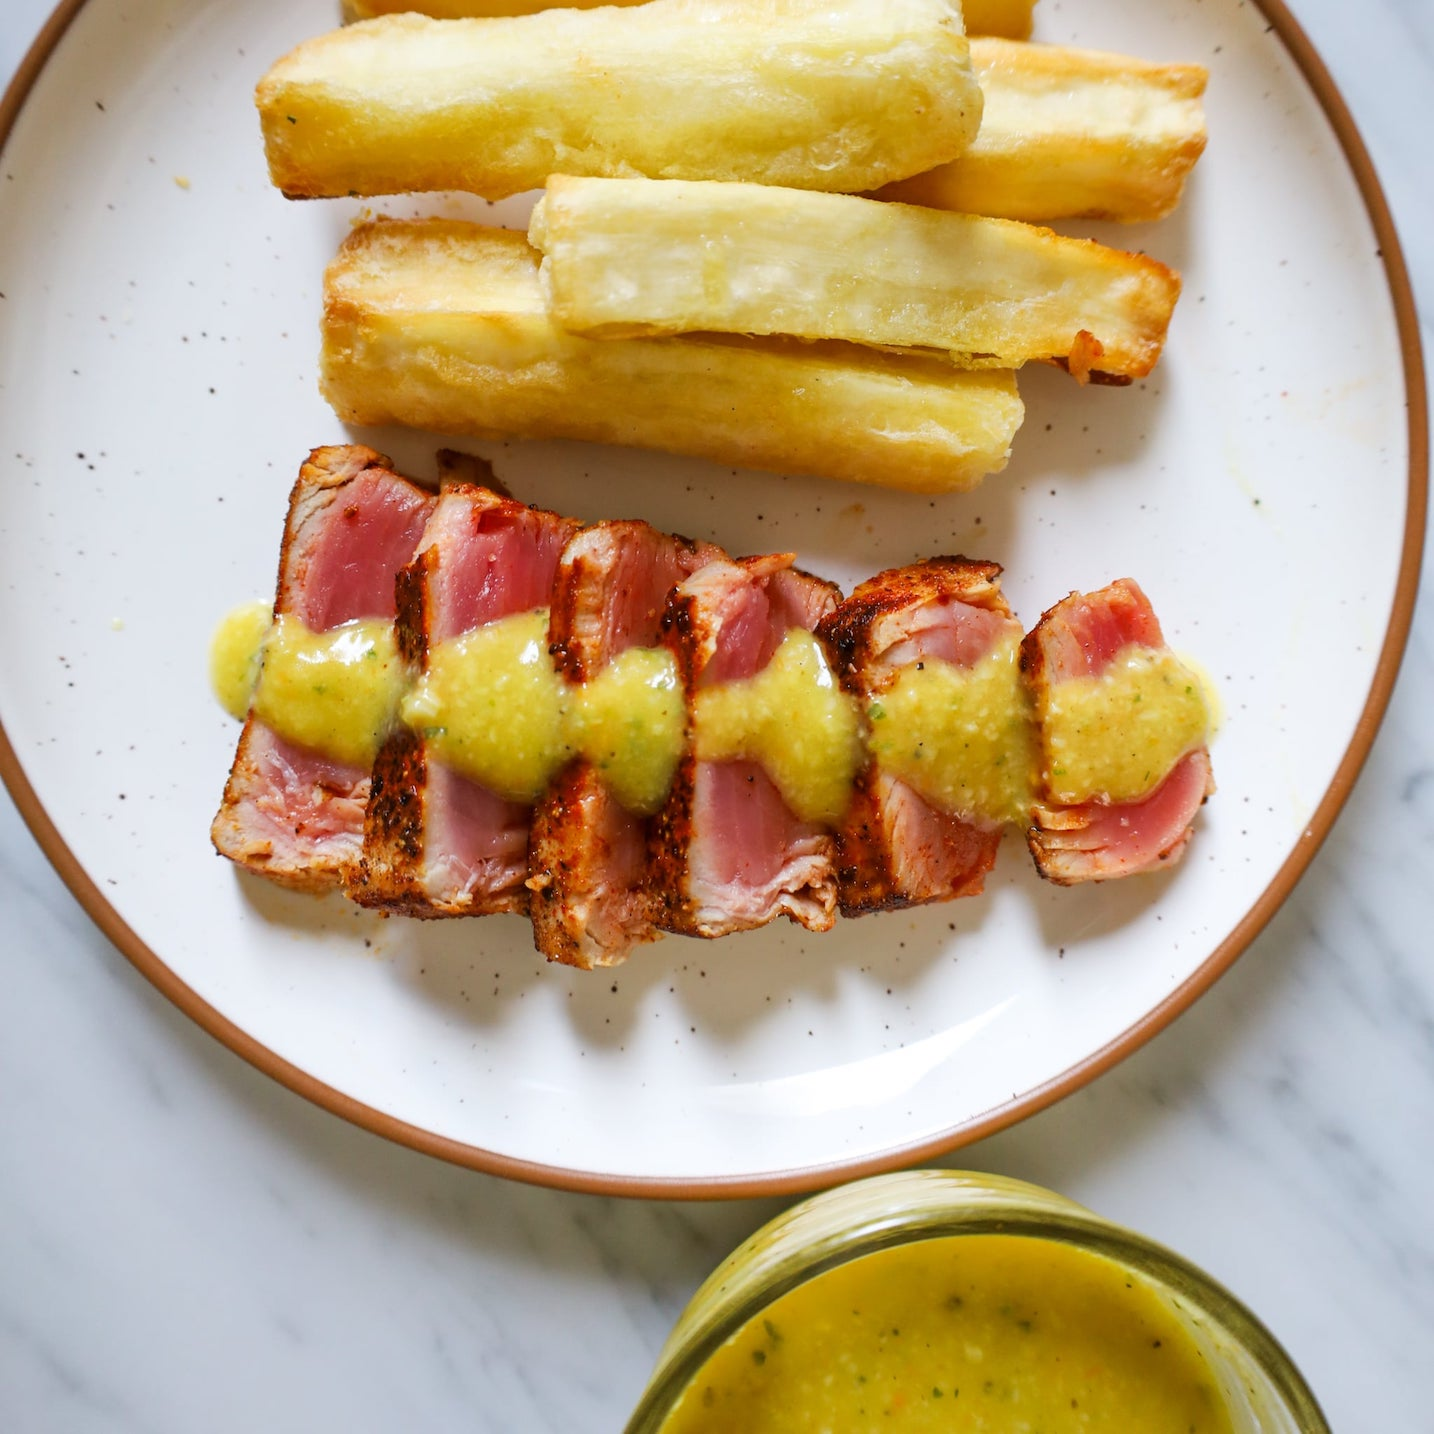 seared yellowfin tuna steaks with yuca fries and mojo